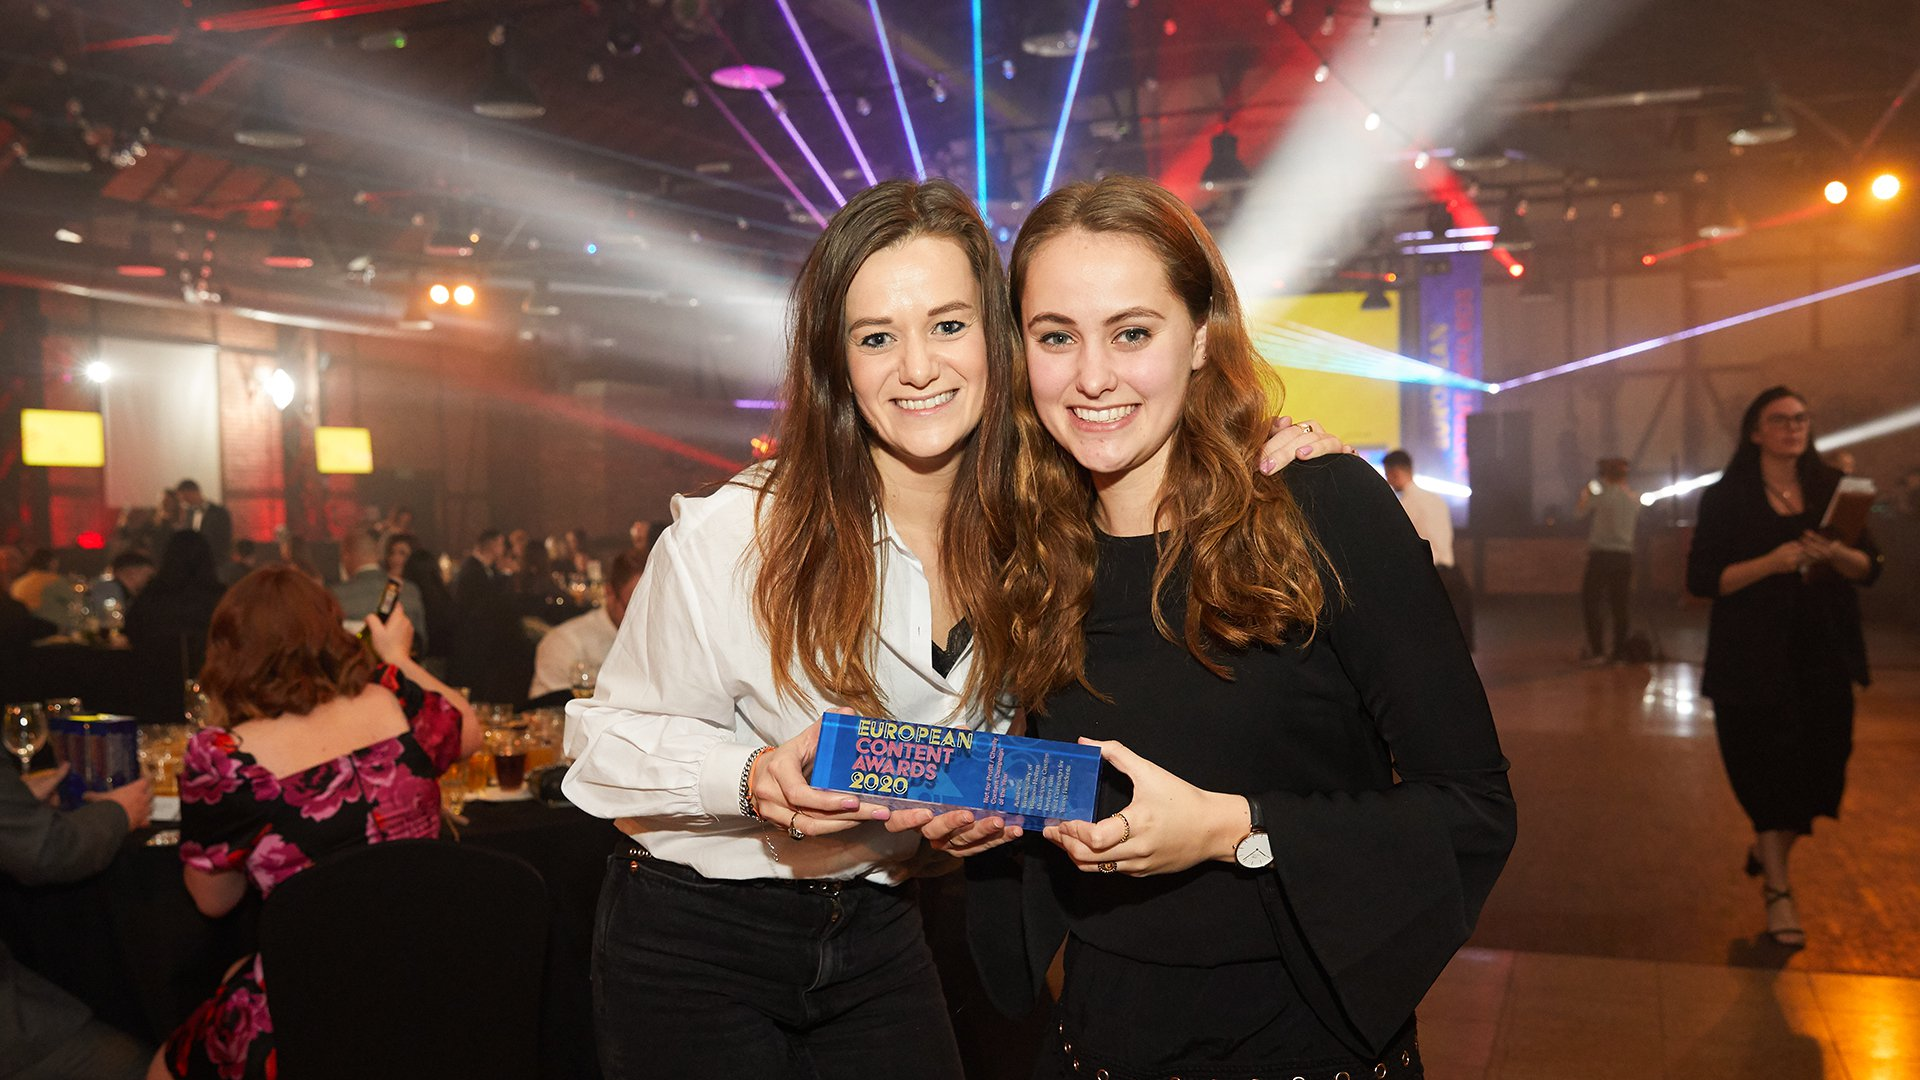 European content awards